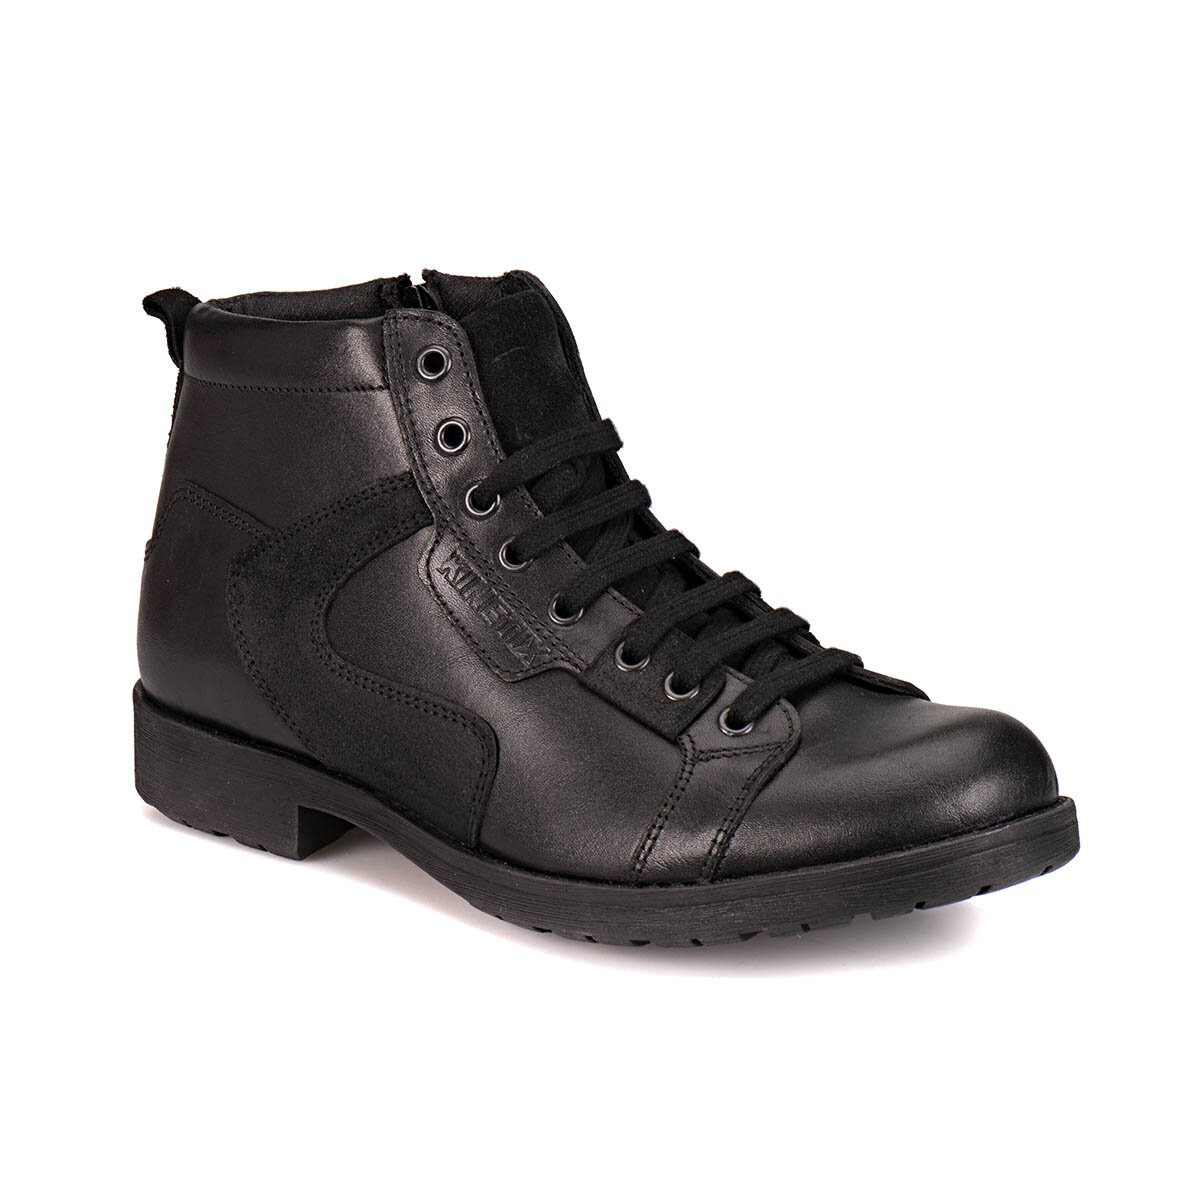 FLO A1305034 Black Men Boots KINETIX